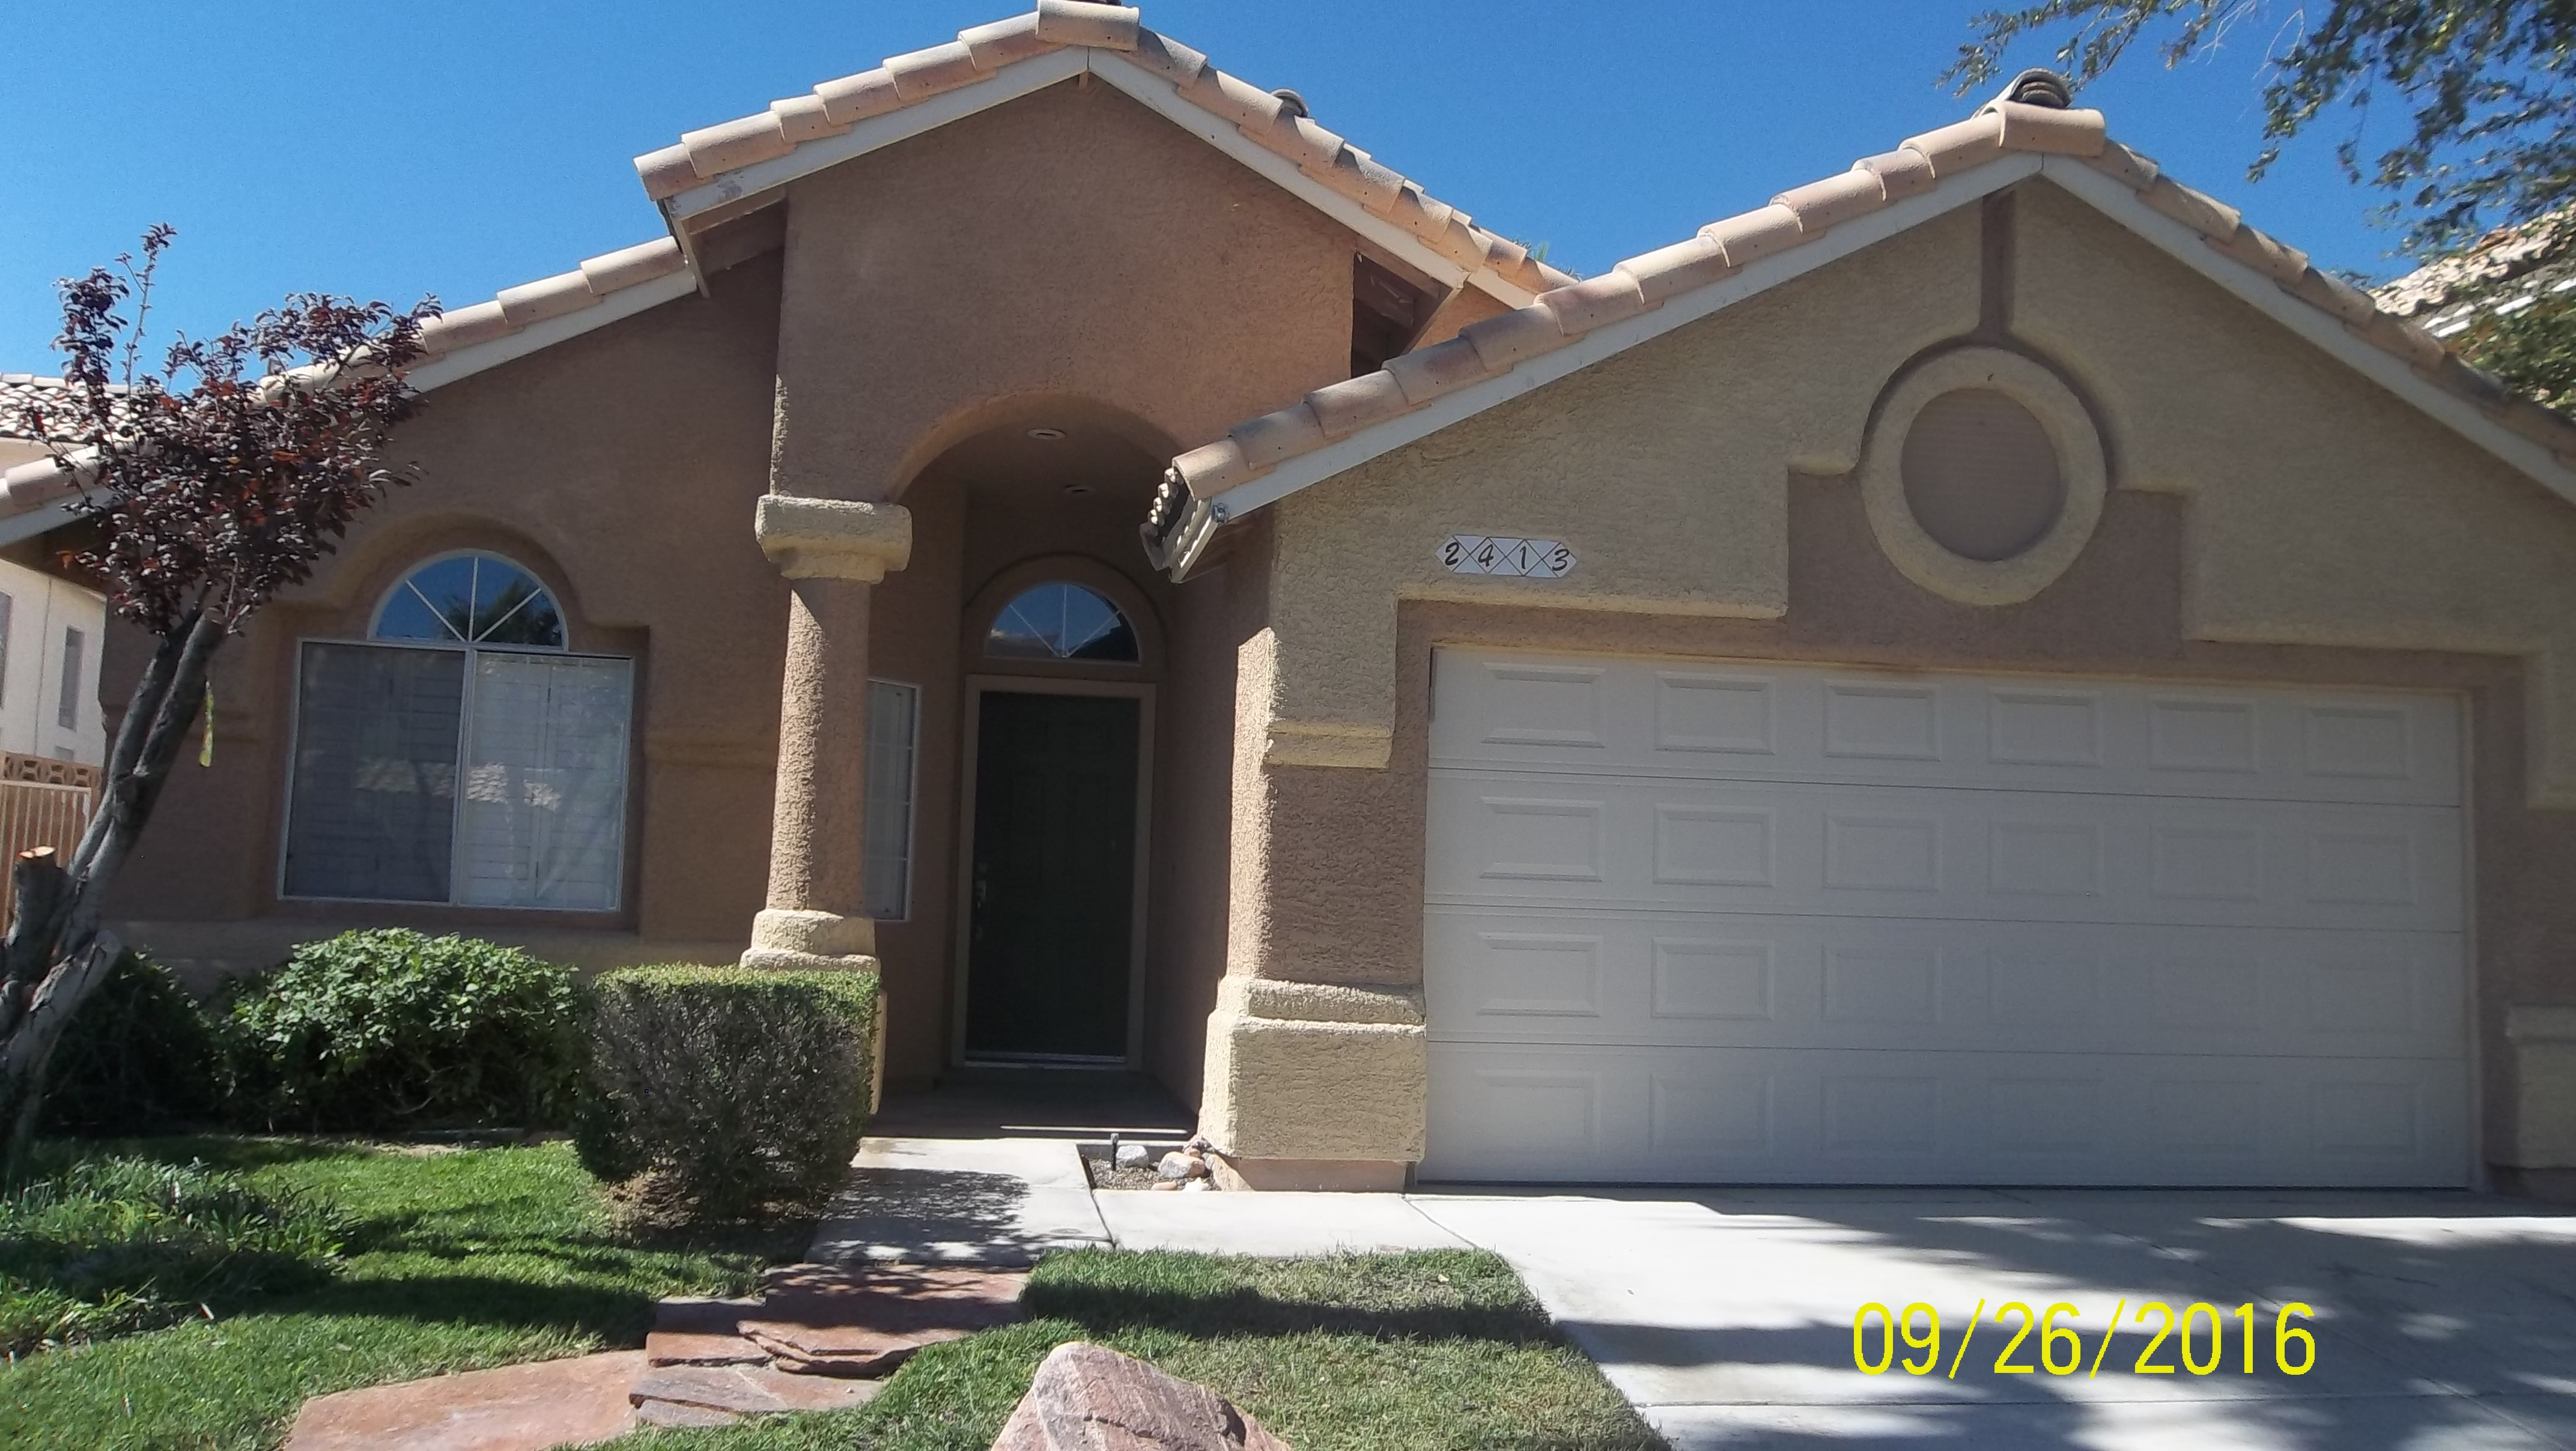 Apartments And Houses For Rent Near Me In Sun City Summerlin Las Vegas